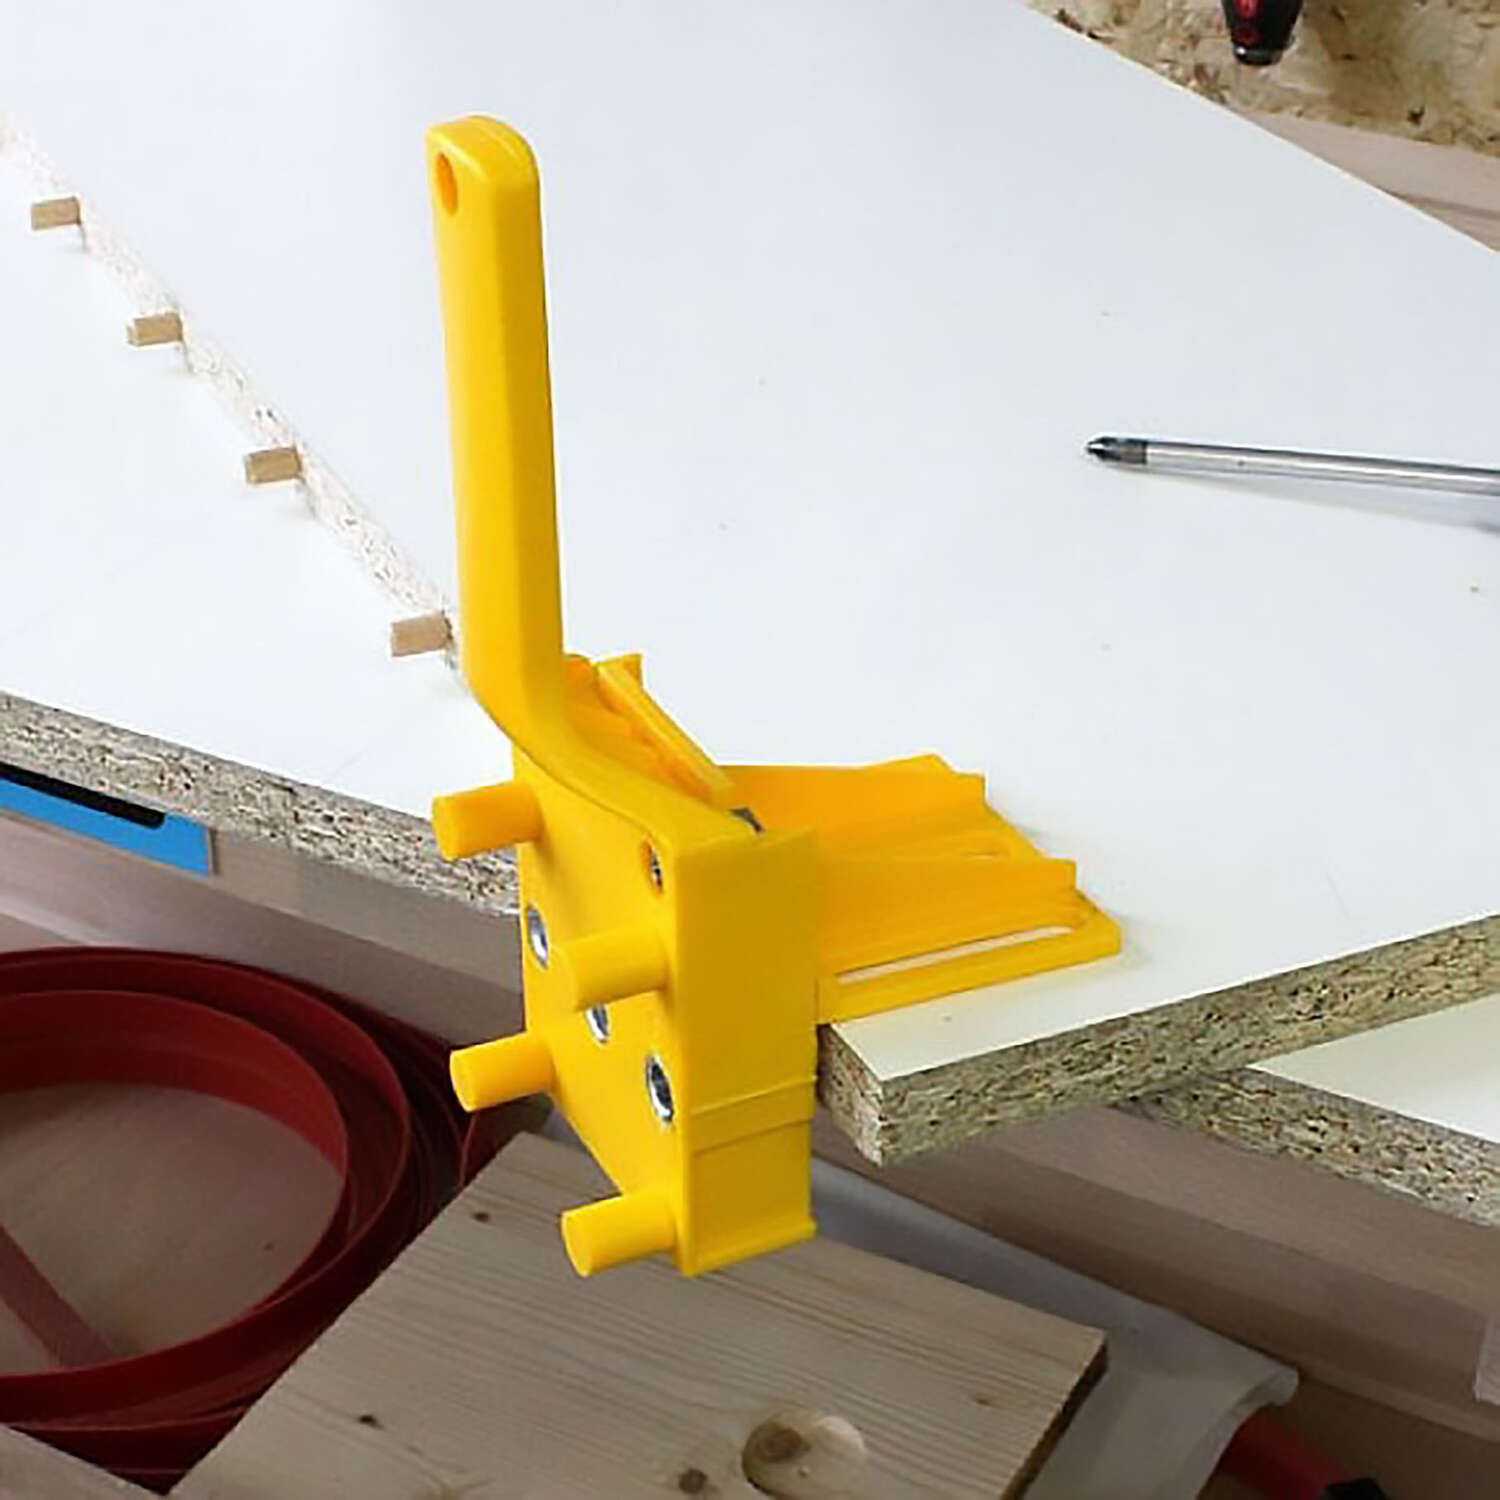 Wolfcraft  Plastic  Doweling Jig  1/2  1-1/4 in. Silver  1 pc.